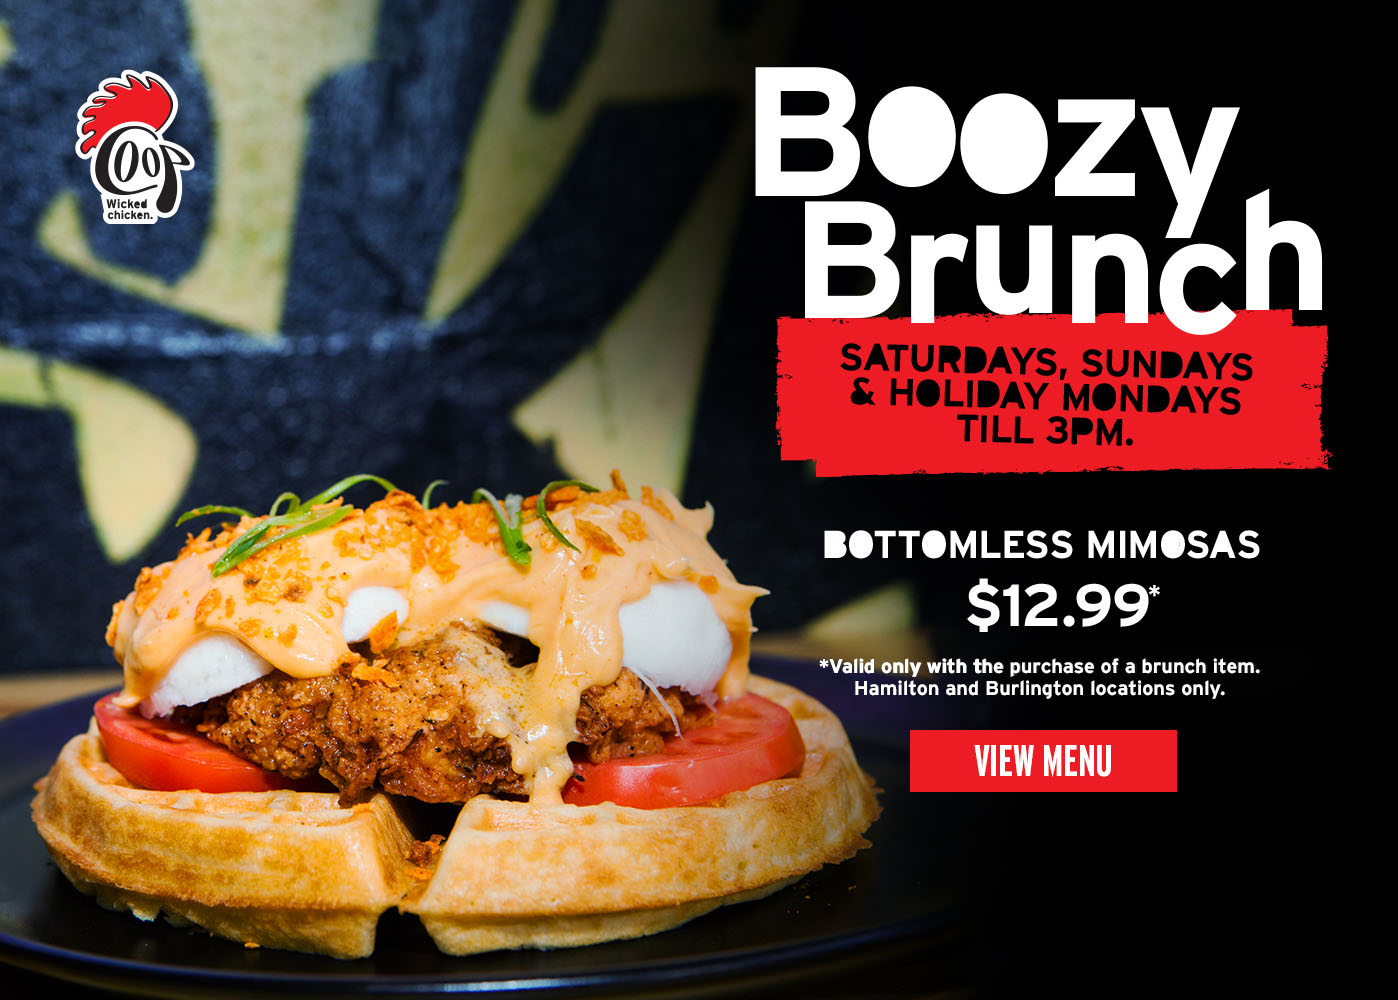 Boozy Brunch at The Coop View Menu